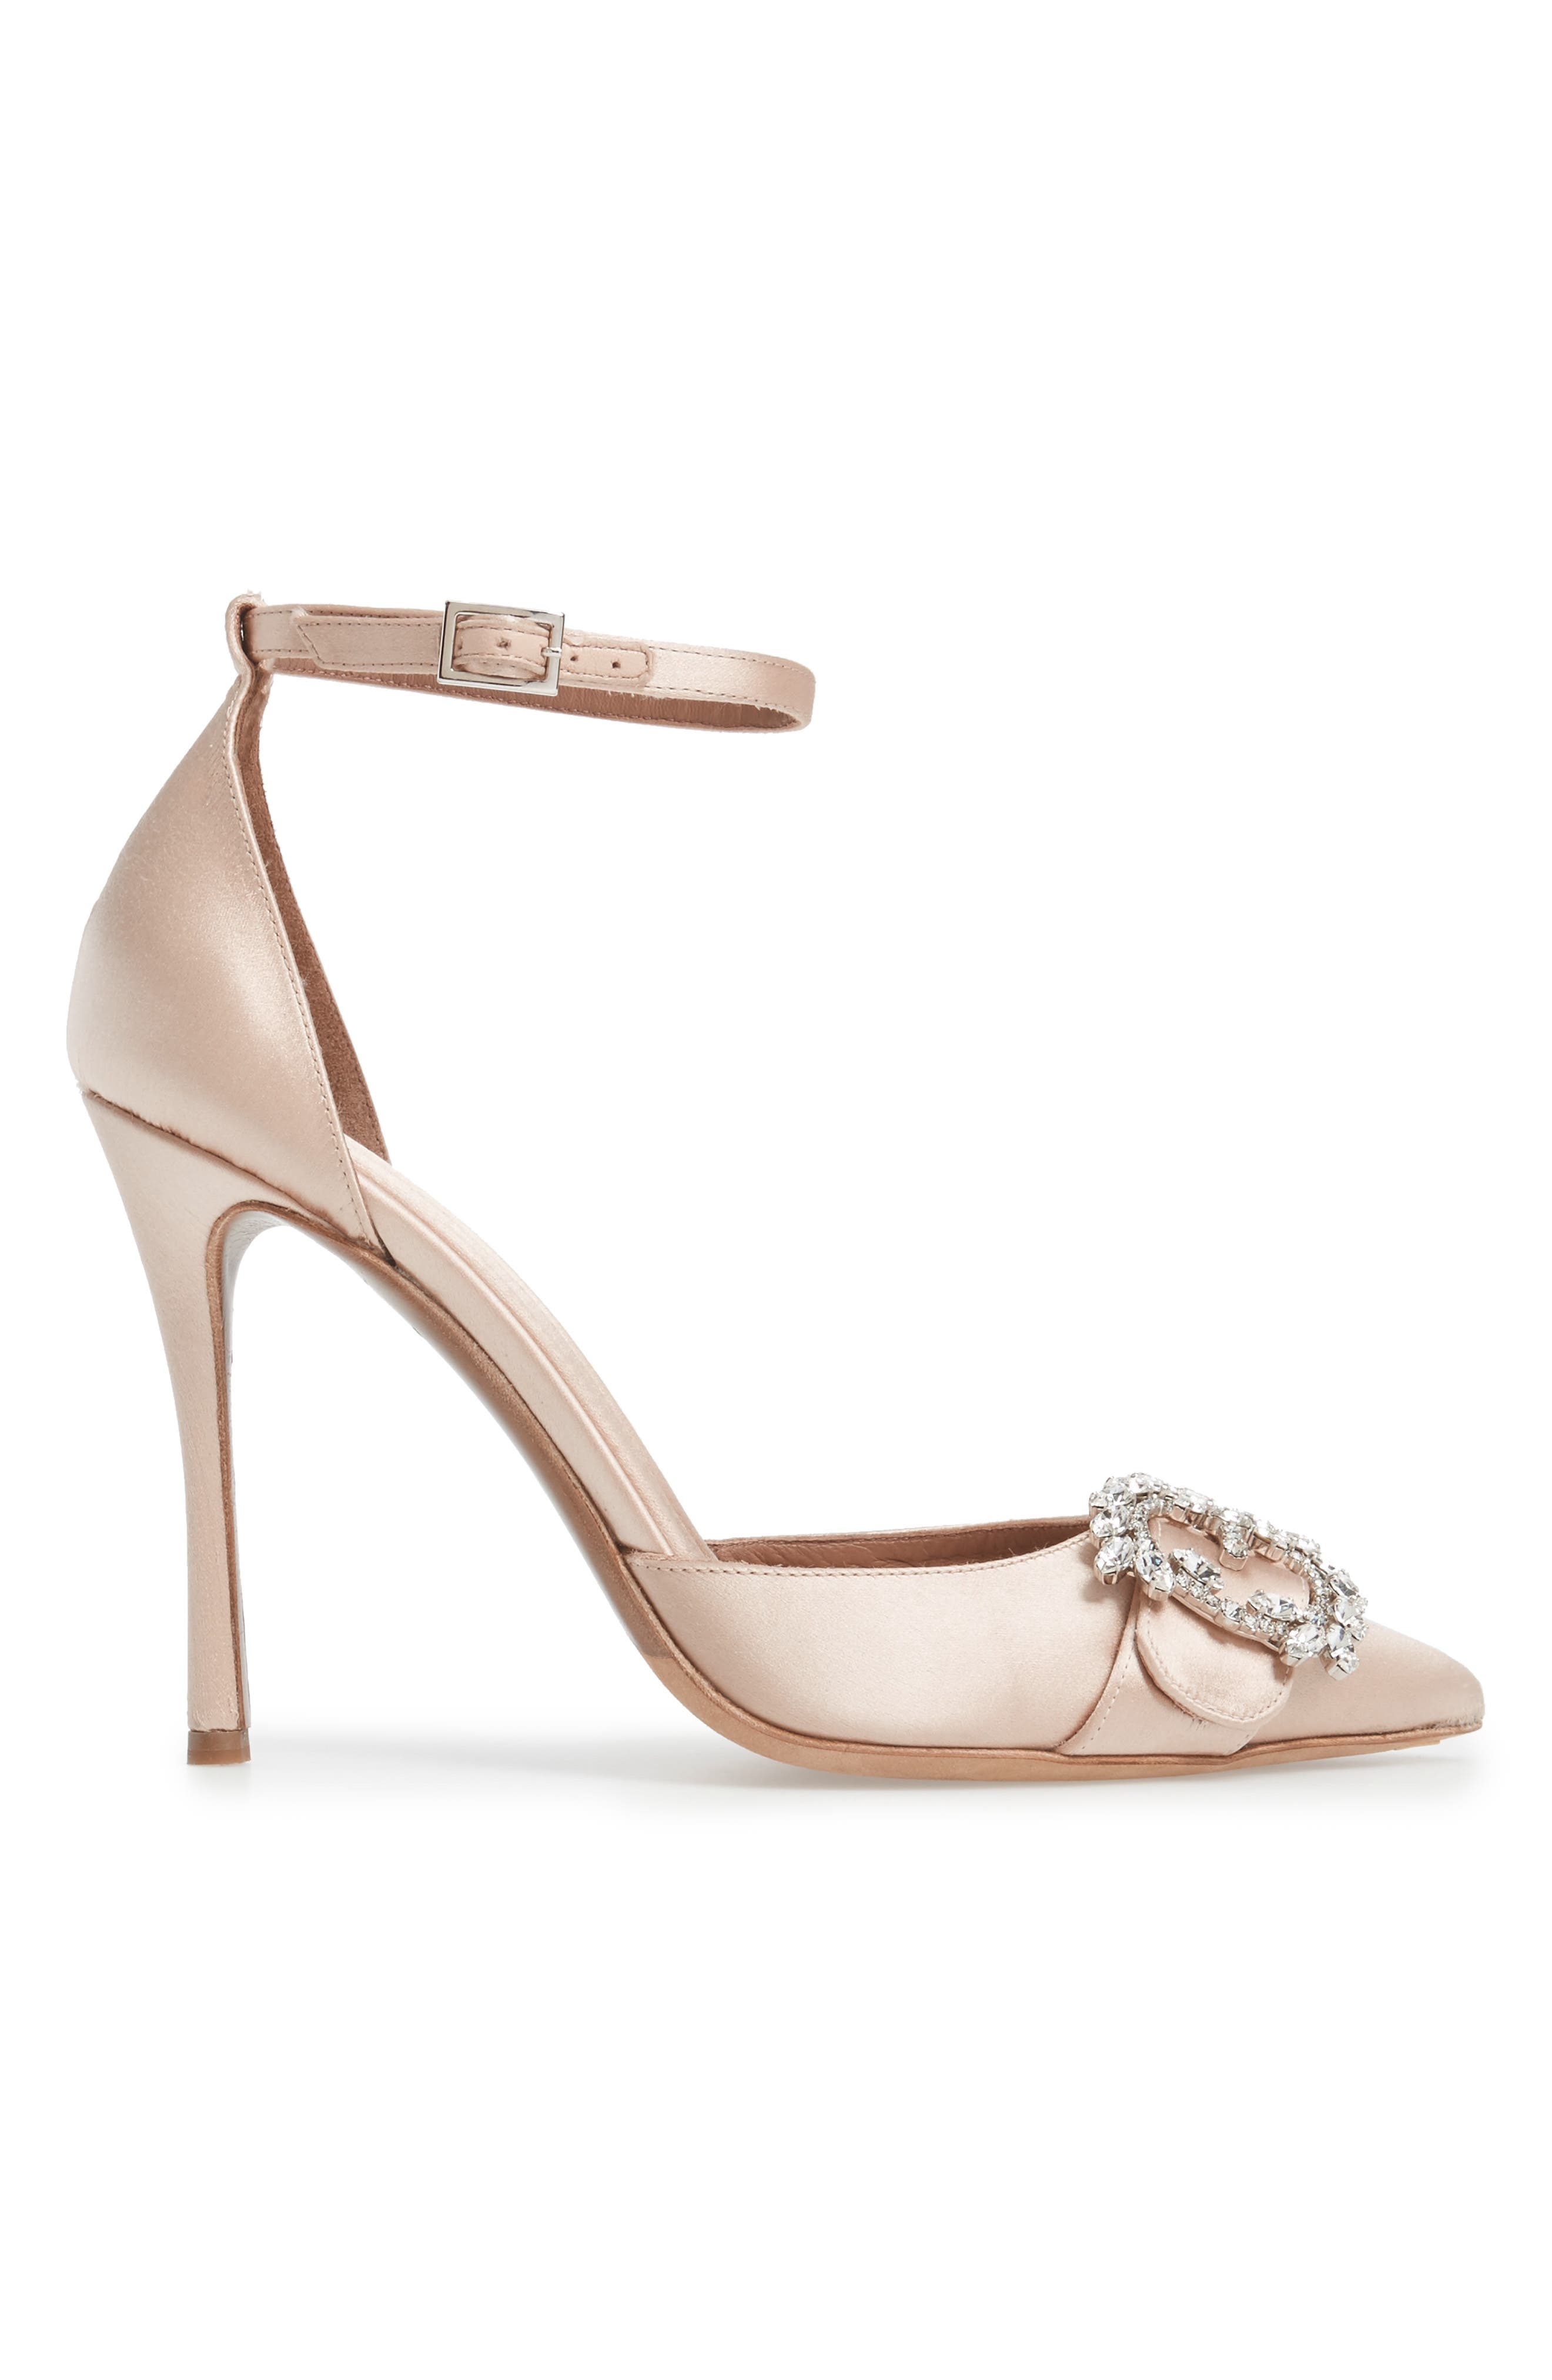 Tie The Knot Crystal Buckle Pump,                             Alternate thumbnail 3, color,                             250